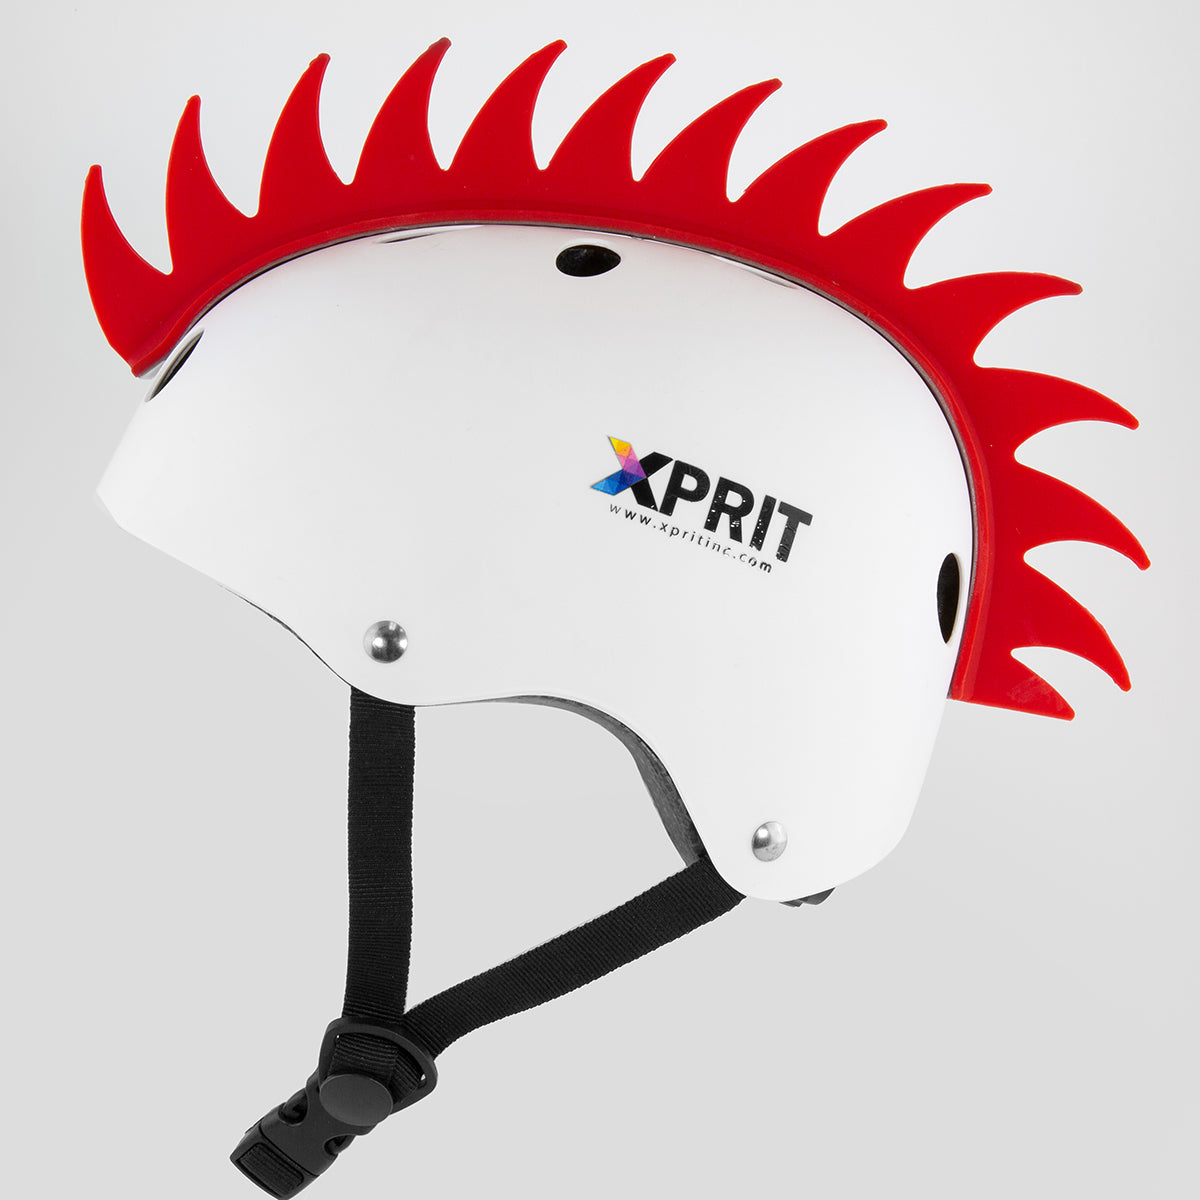 XPRIT Mohawk, Warhawk Wig Accessory Adhesive/Stick On Helmet for Skateboarding, Dirt-Bikes, Motorcycle, Cycling, Red